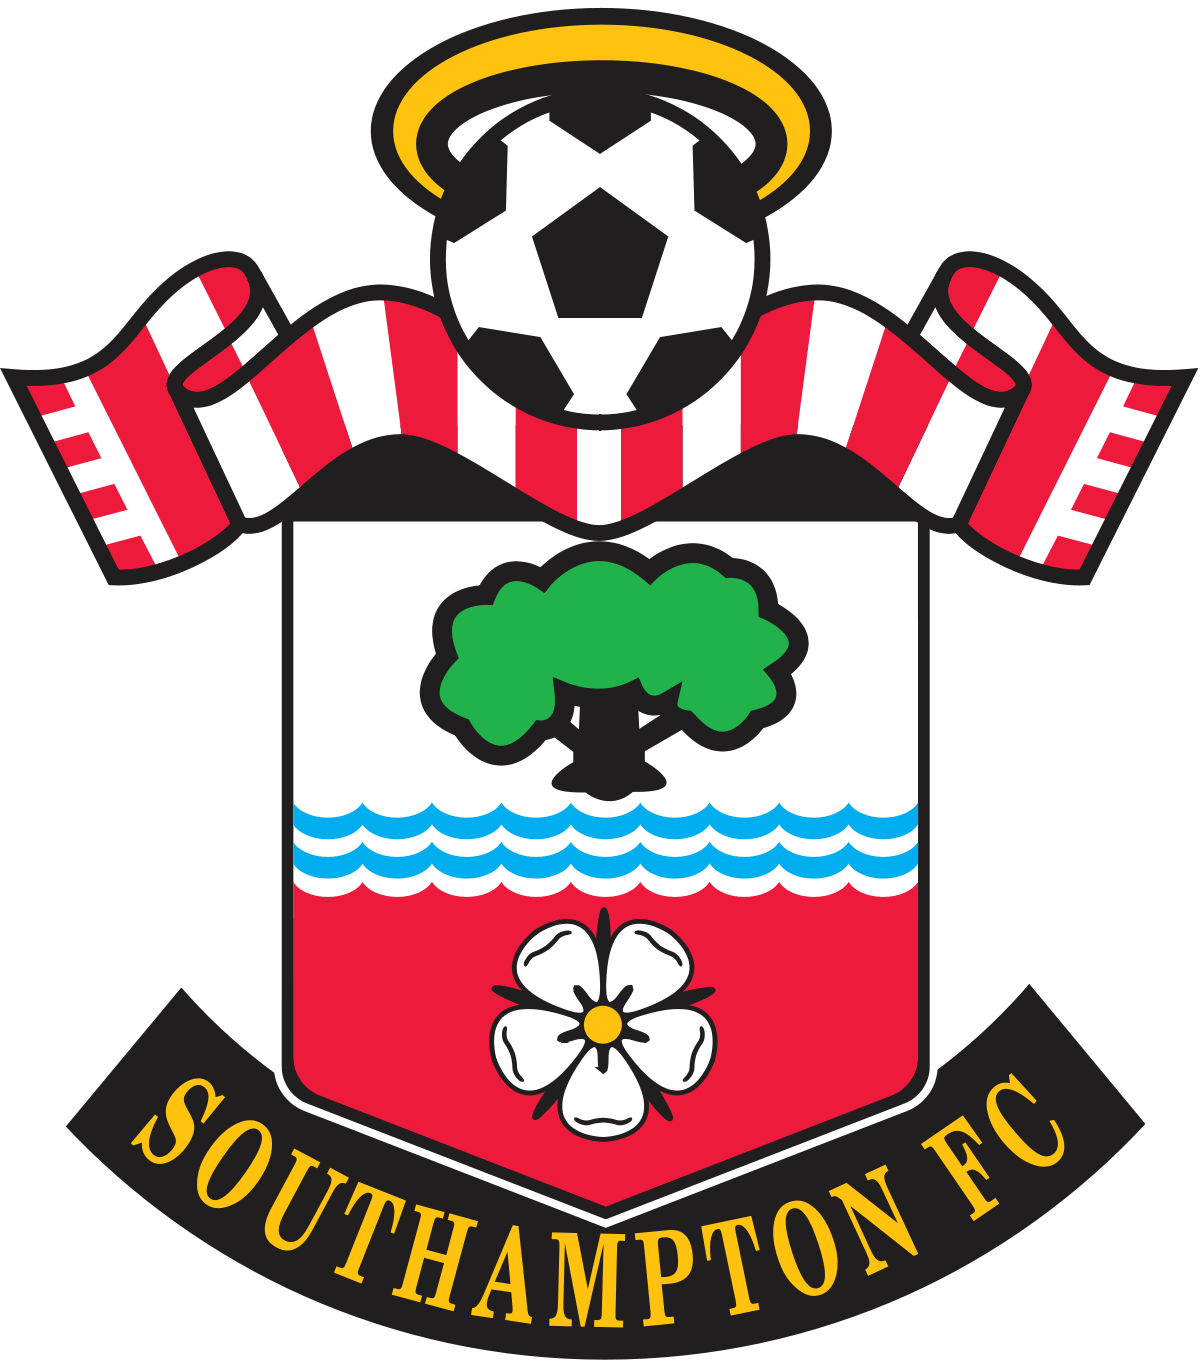 FC Southampton - Ethiopian's #1 Favorite English Premier League Football Club